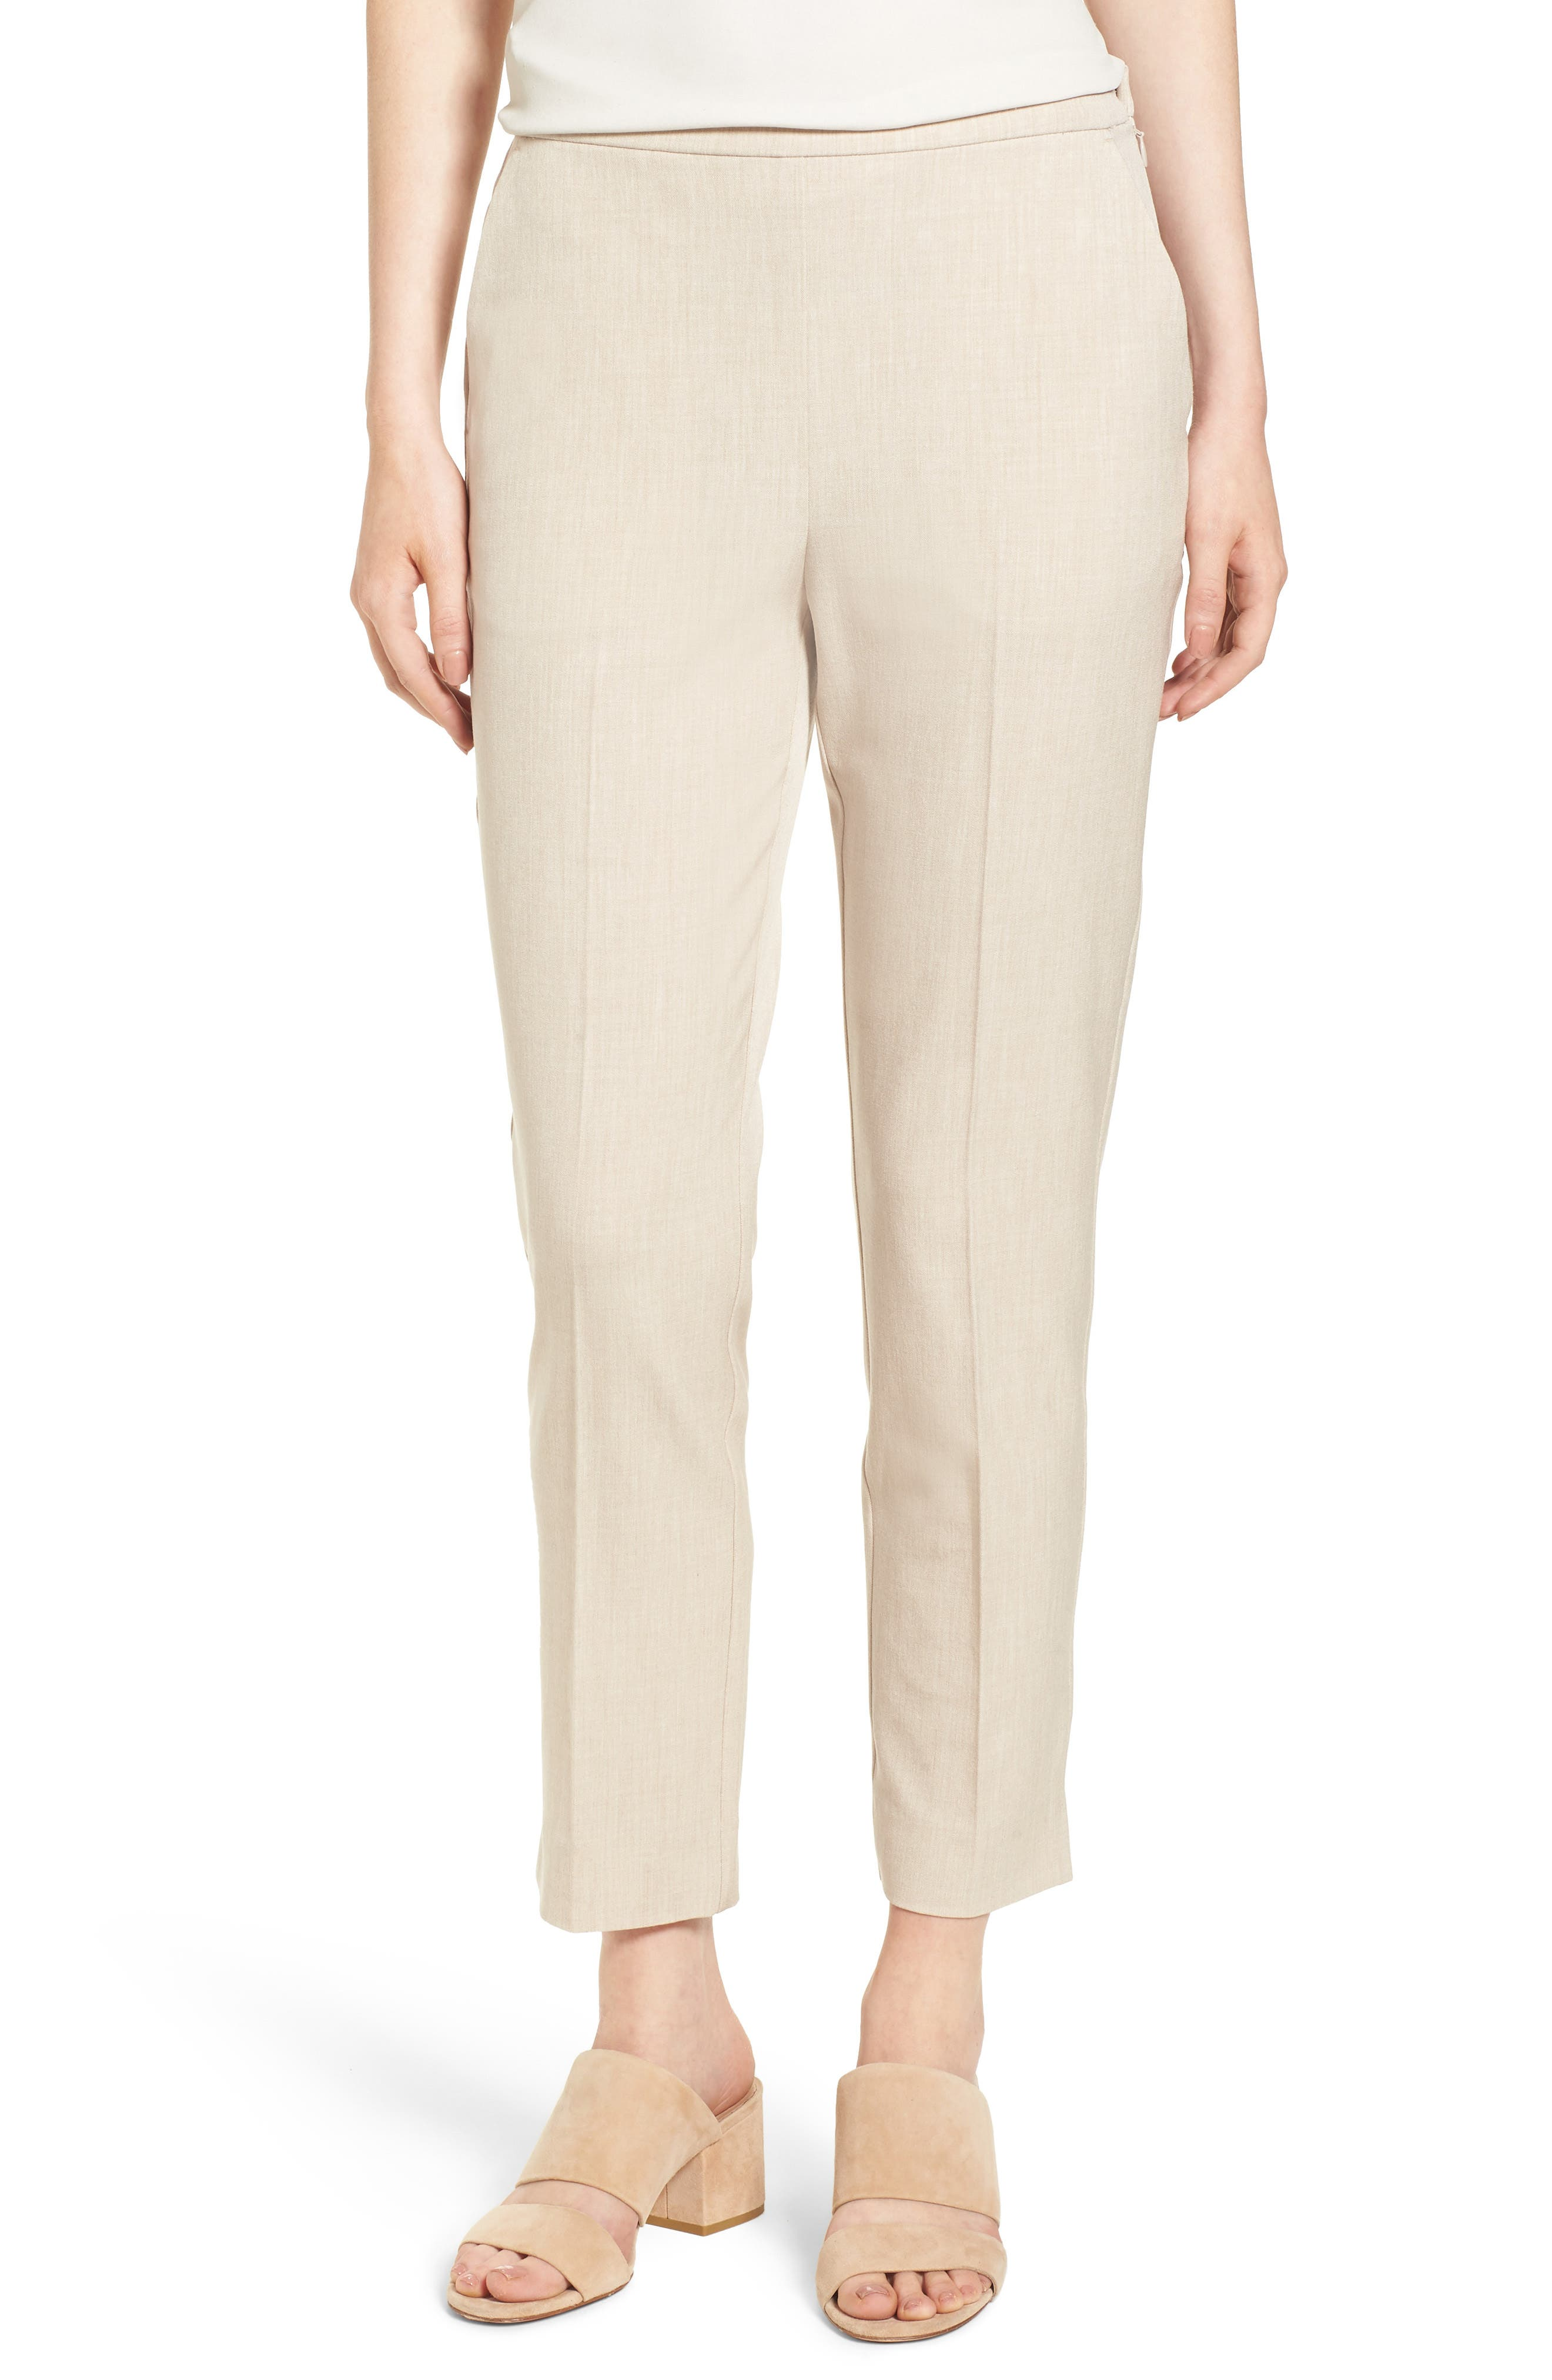 EILEEN FISHER High Waist Tapered Pants, Main, color, 291